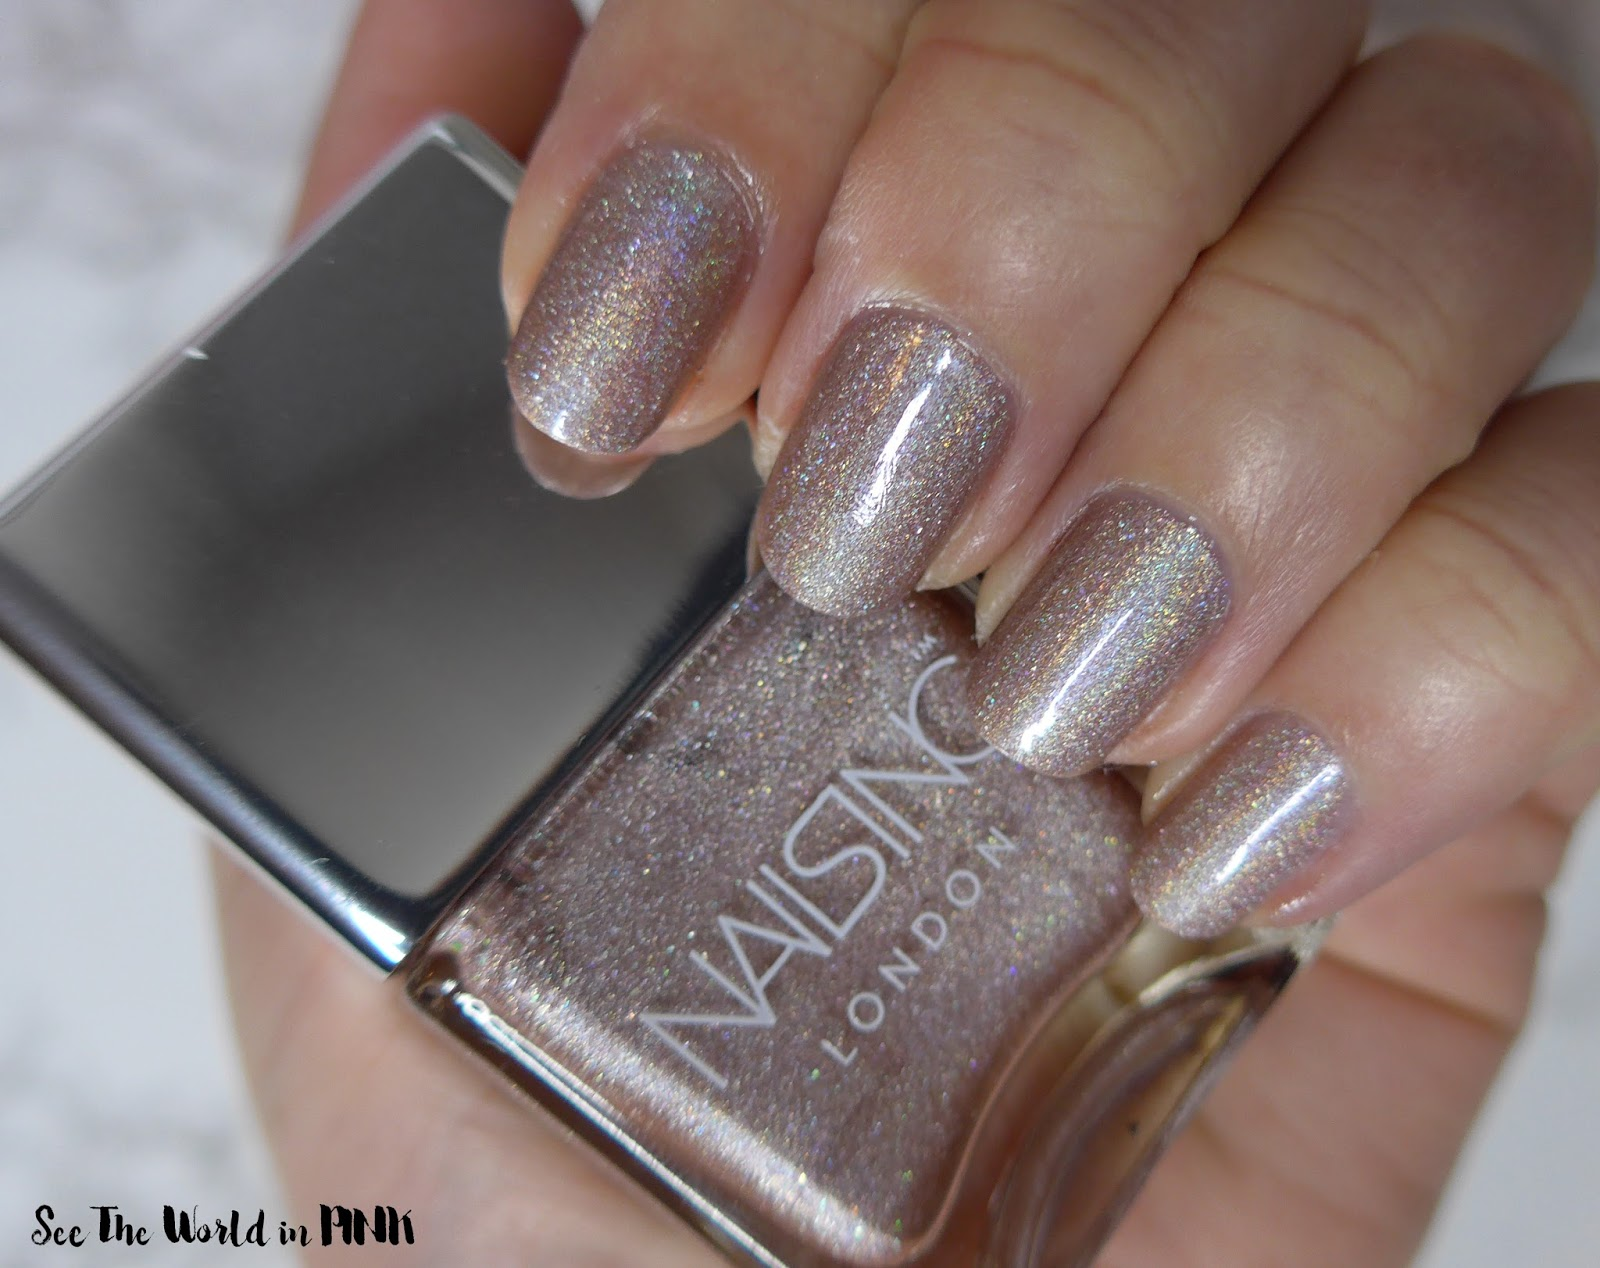 Manicure Tuesday - Nails Inc. Champagne Shine Nail Polish Duo \